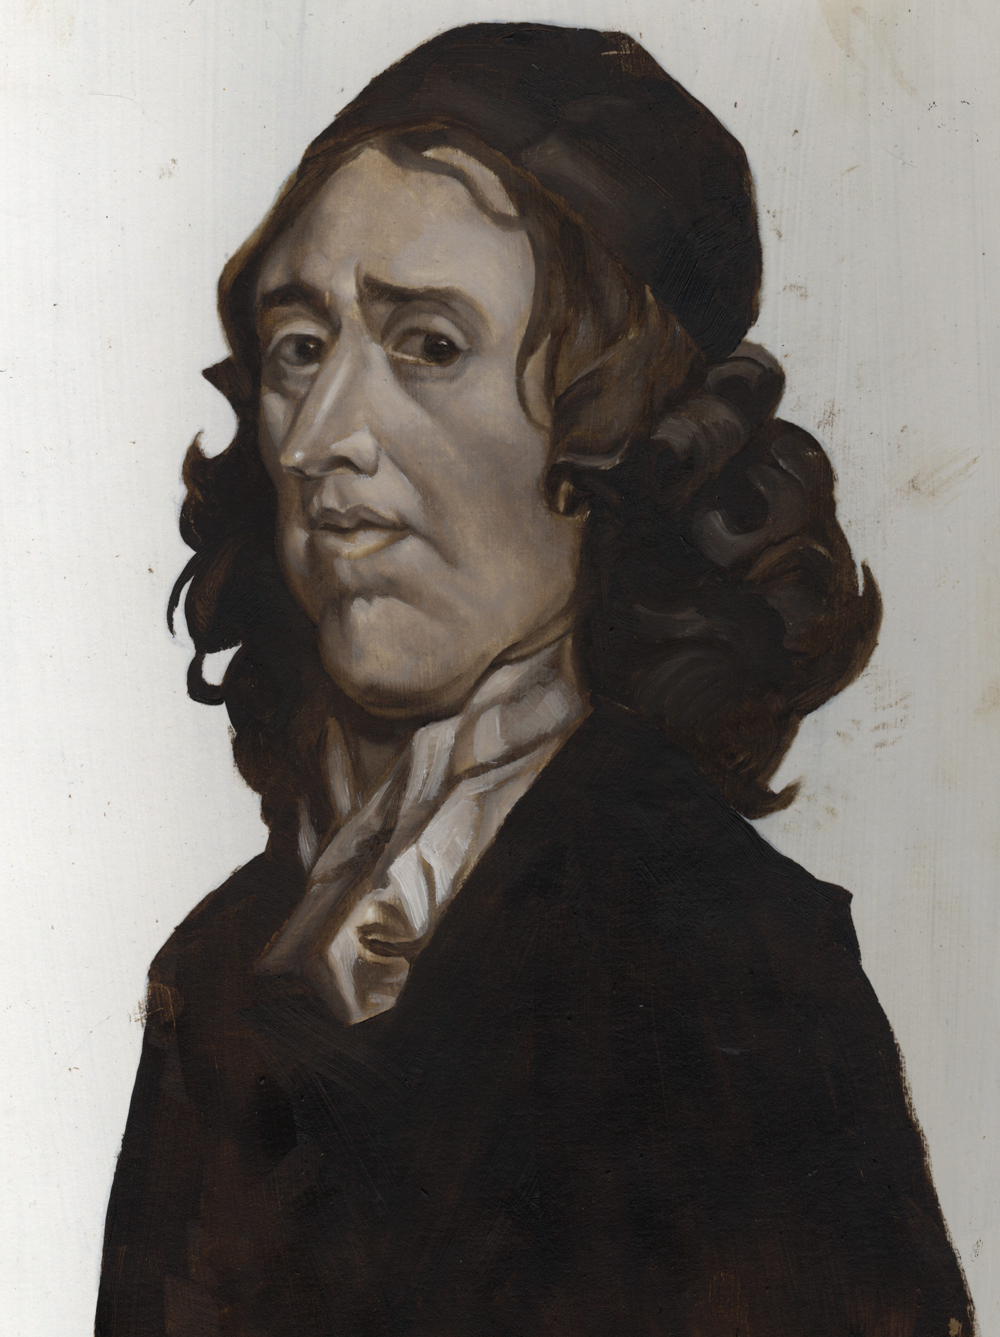 John Owen illustration based on Greenhill's portrait